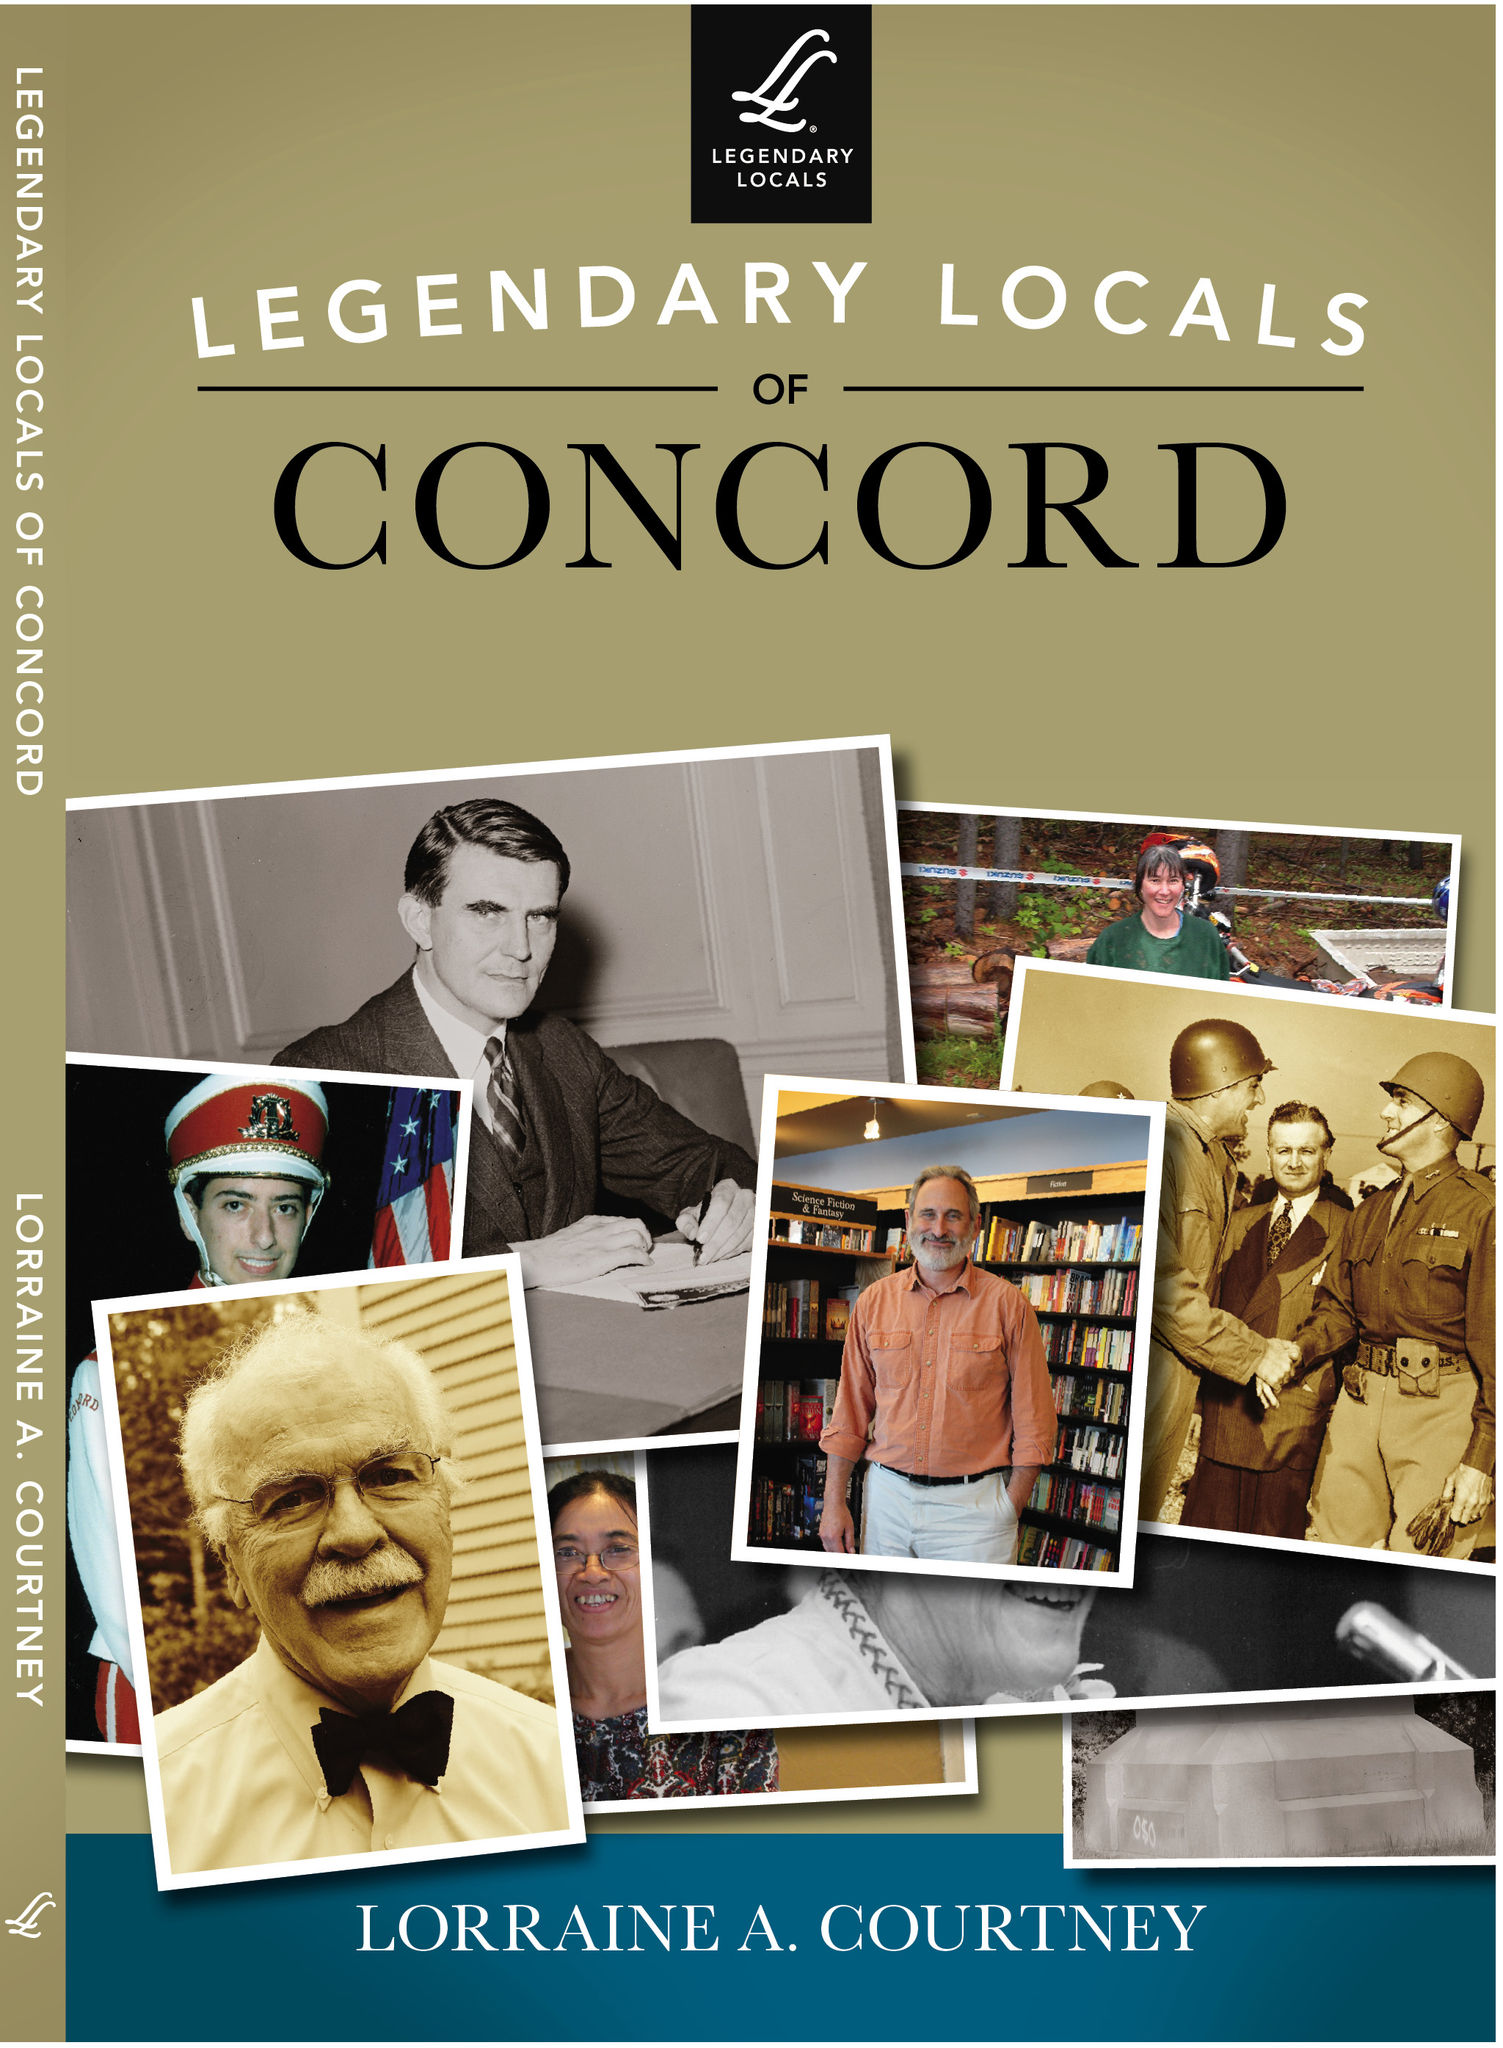 Legendary Locals of Concord, NH